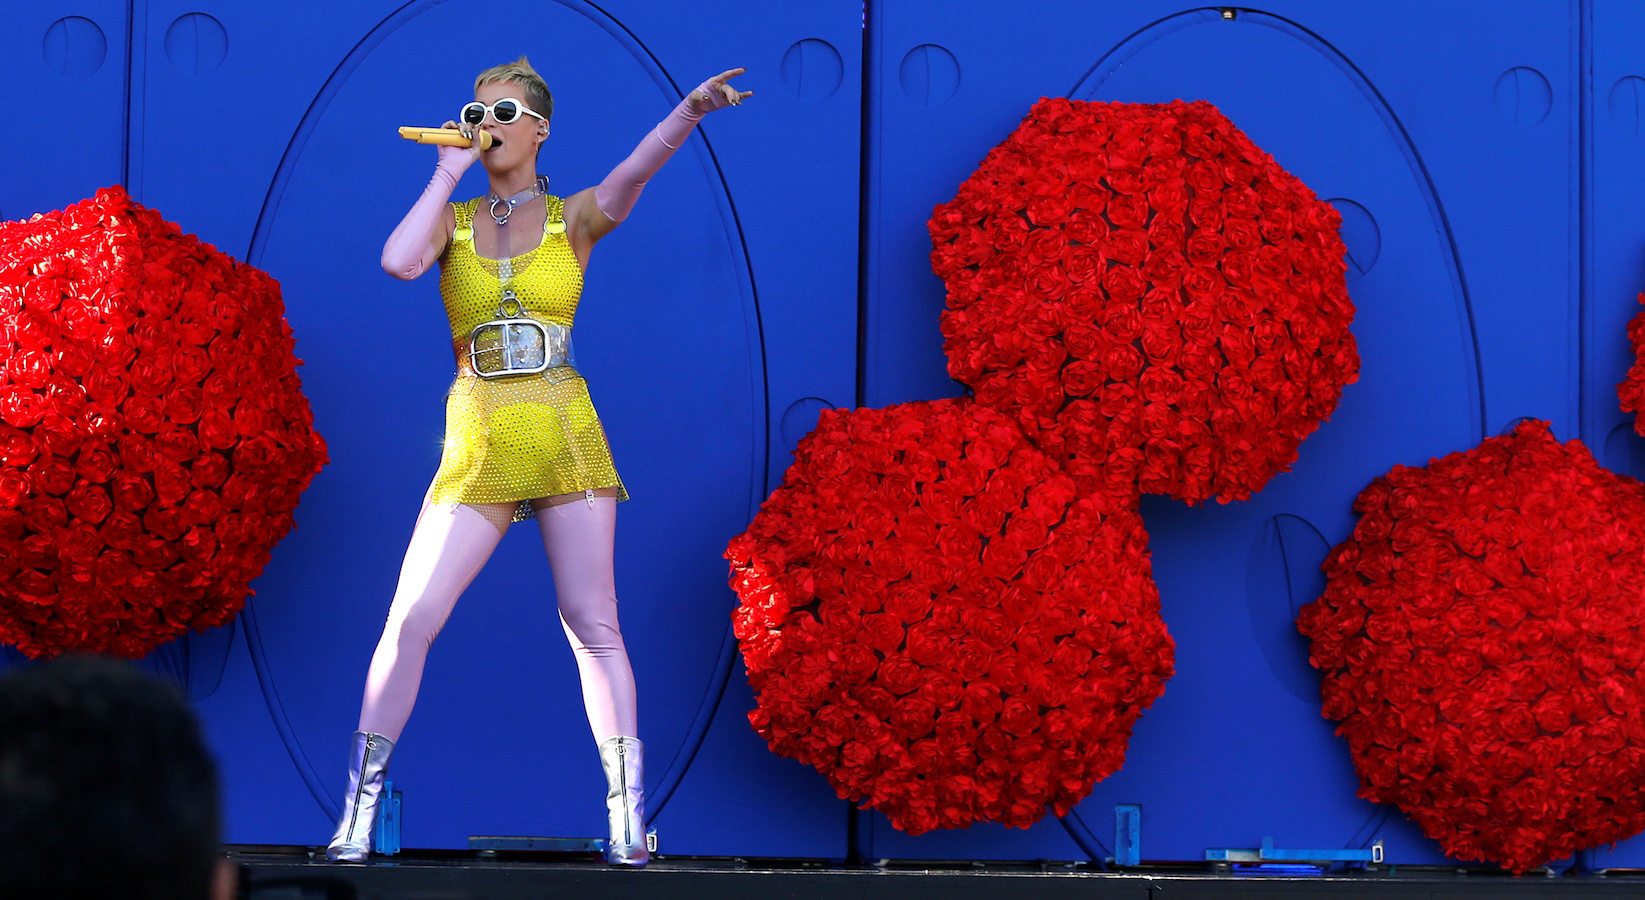 Katy Perry performs at the Wango Tango concert in Carson, California U.S., May 13, 2017.   REUTERS/Mario Anzuoni - RTX35Q18